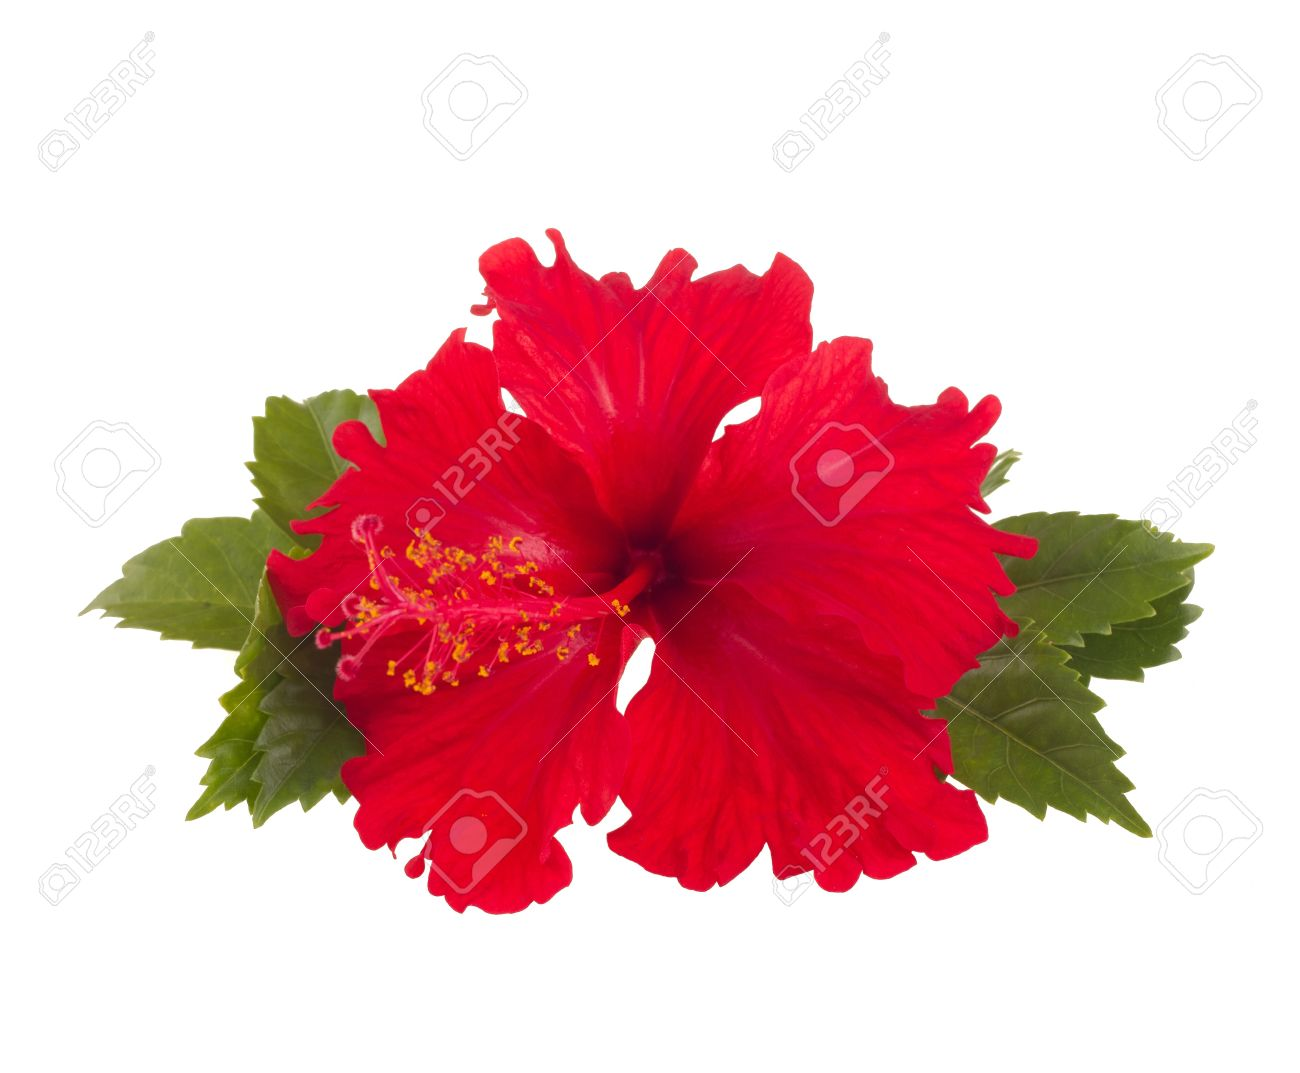 a red hibiscus flower isolated on white background - 14643944